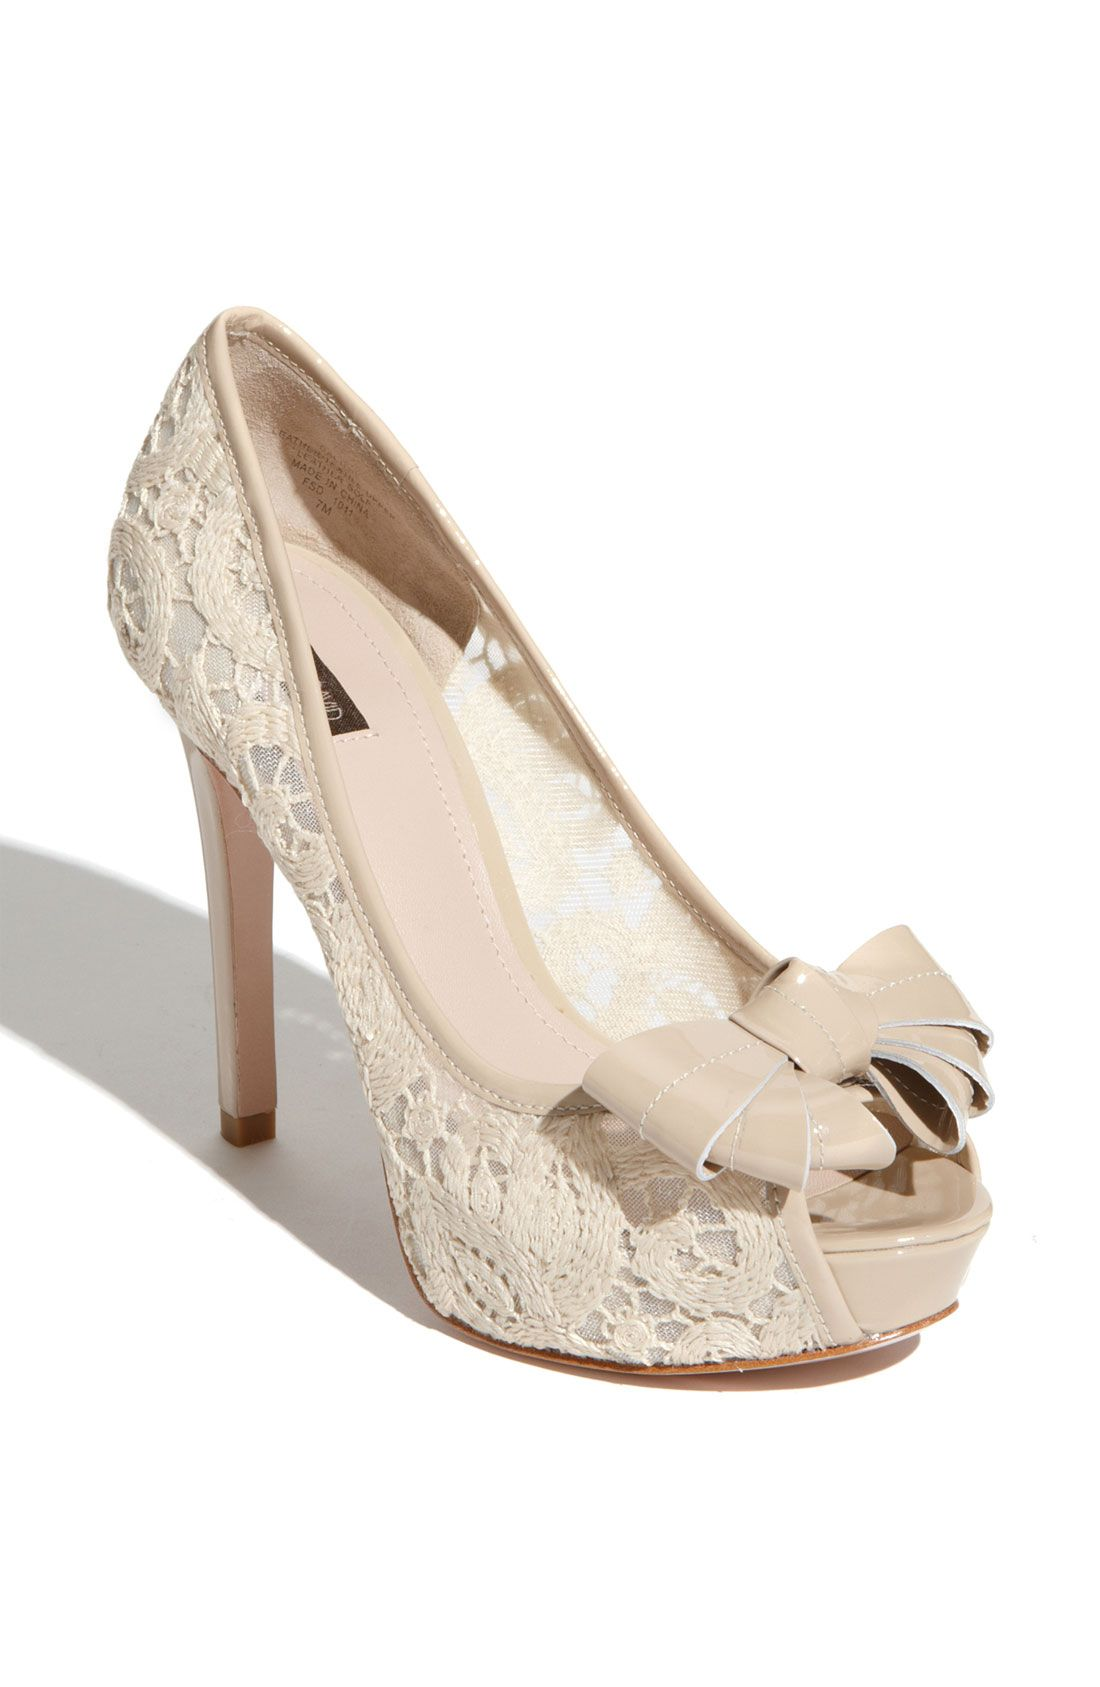 3ab67d0382f Joan & David Cutie Pump in Beige (beige/ dune) | Shoes | Shoes ...